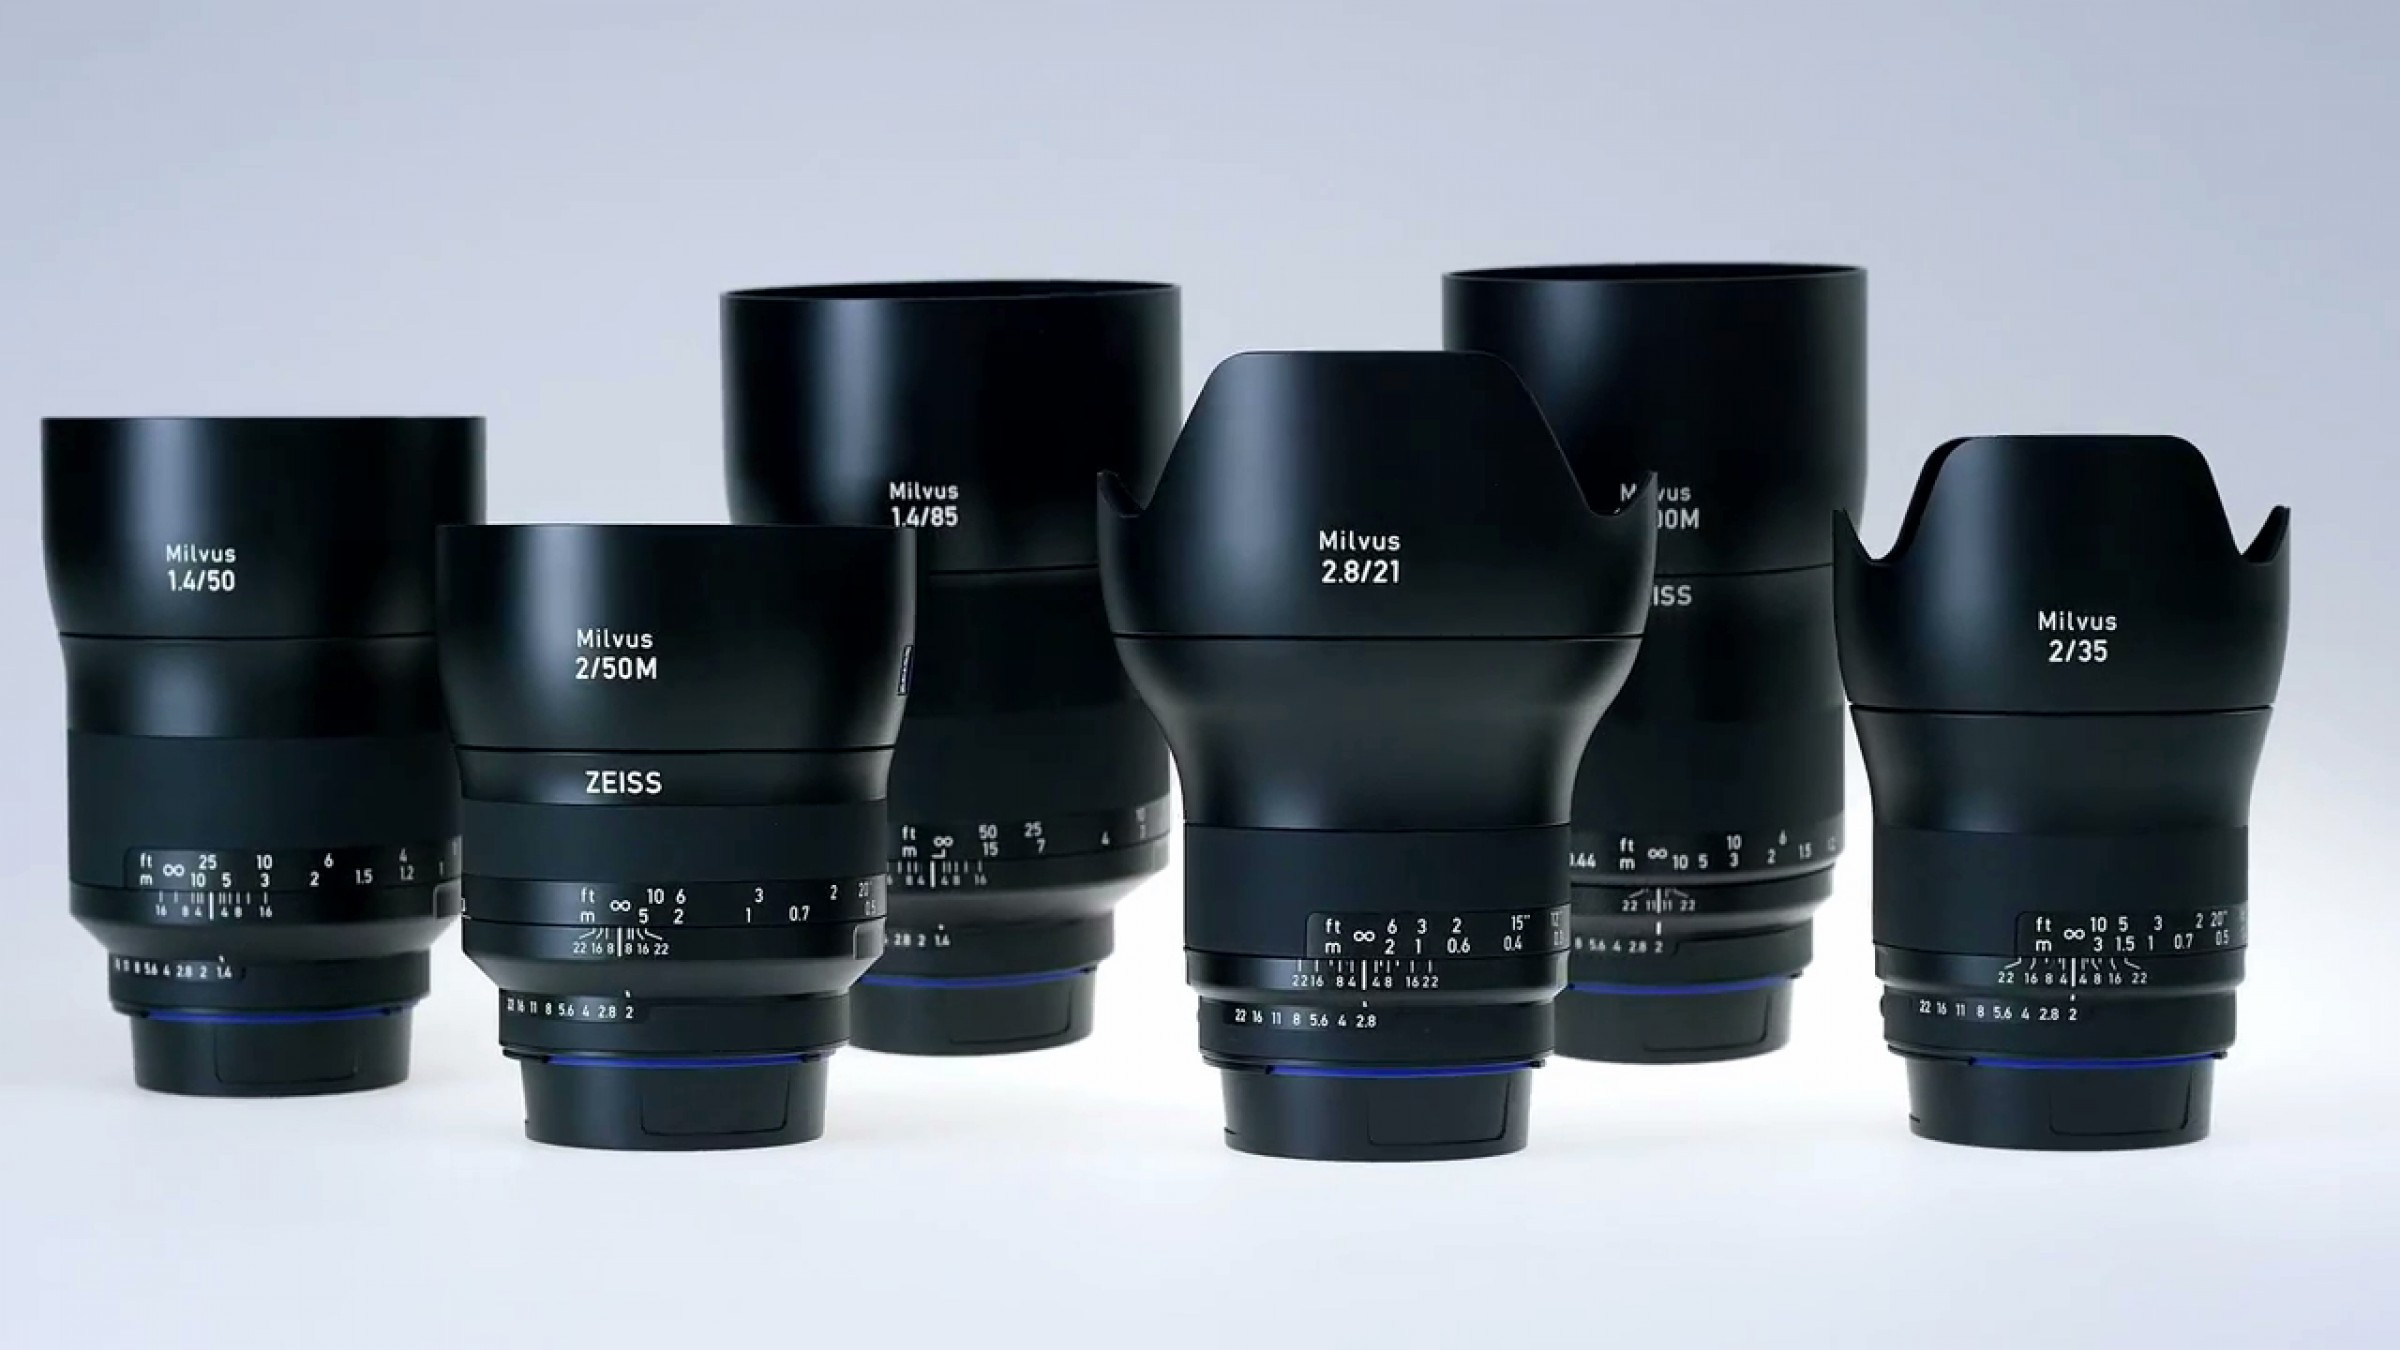 New Zeiss Milvus Full Frame Lens Family Has Canon Or Nikon